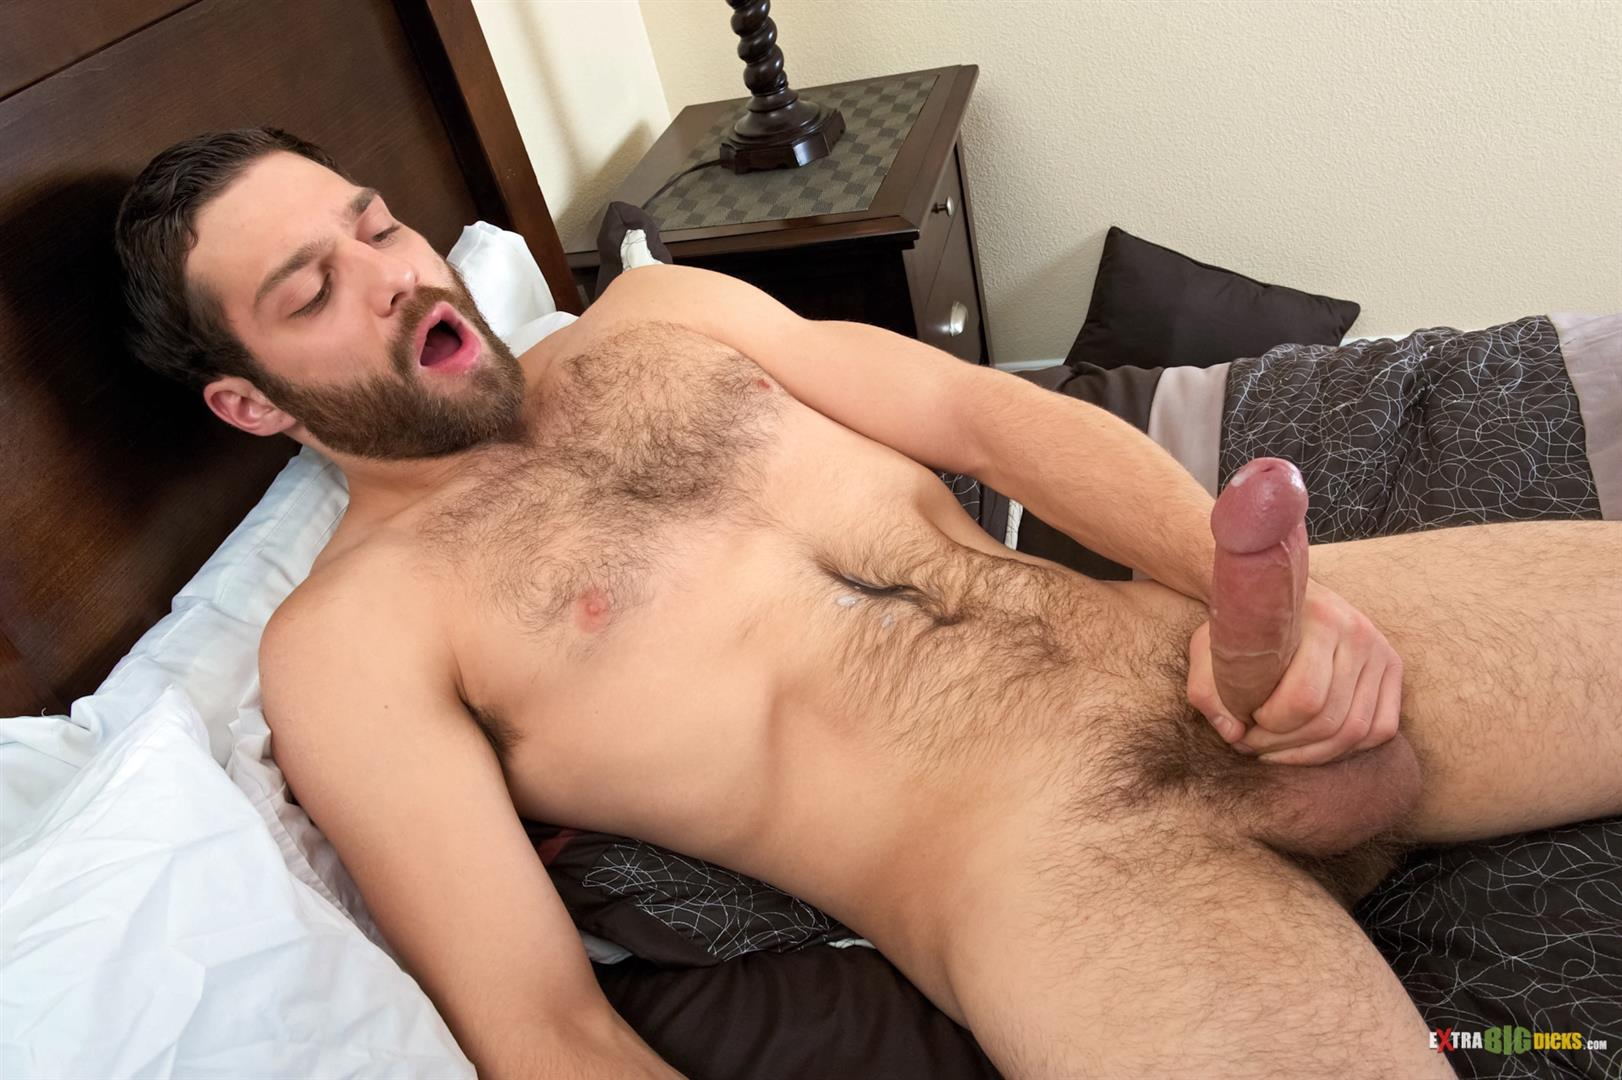 Adult men jerking off